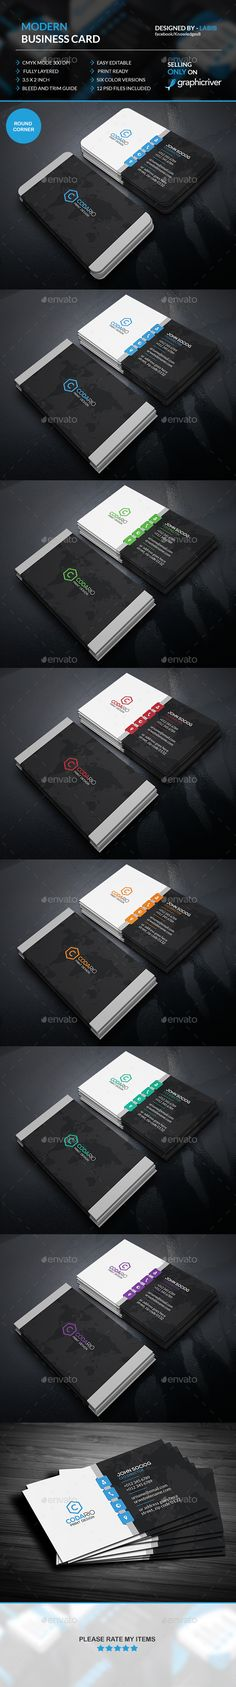 Modern Corporate Business Cards - Creative Business Cards Download here : http://graphicriver.net/item/modern-corporate-business-cards/12677186?s_rank=1745&ref=Al-fatih